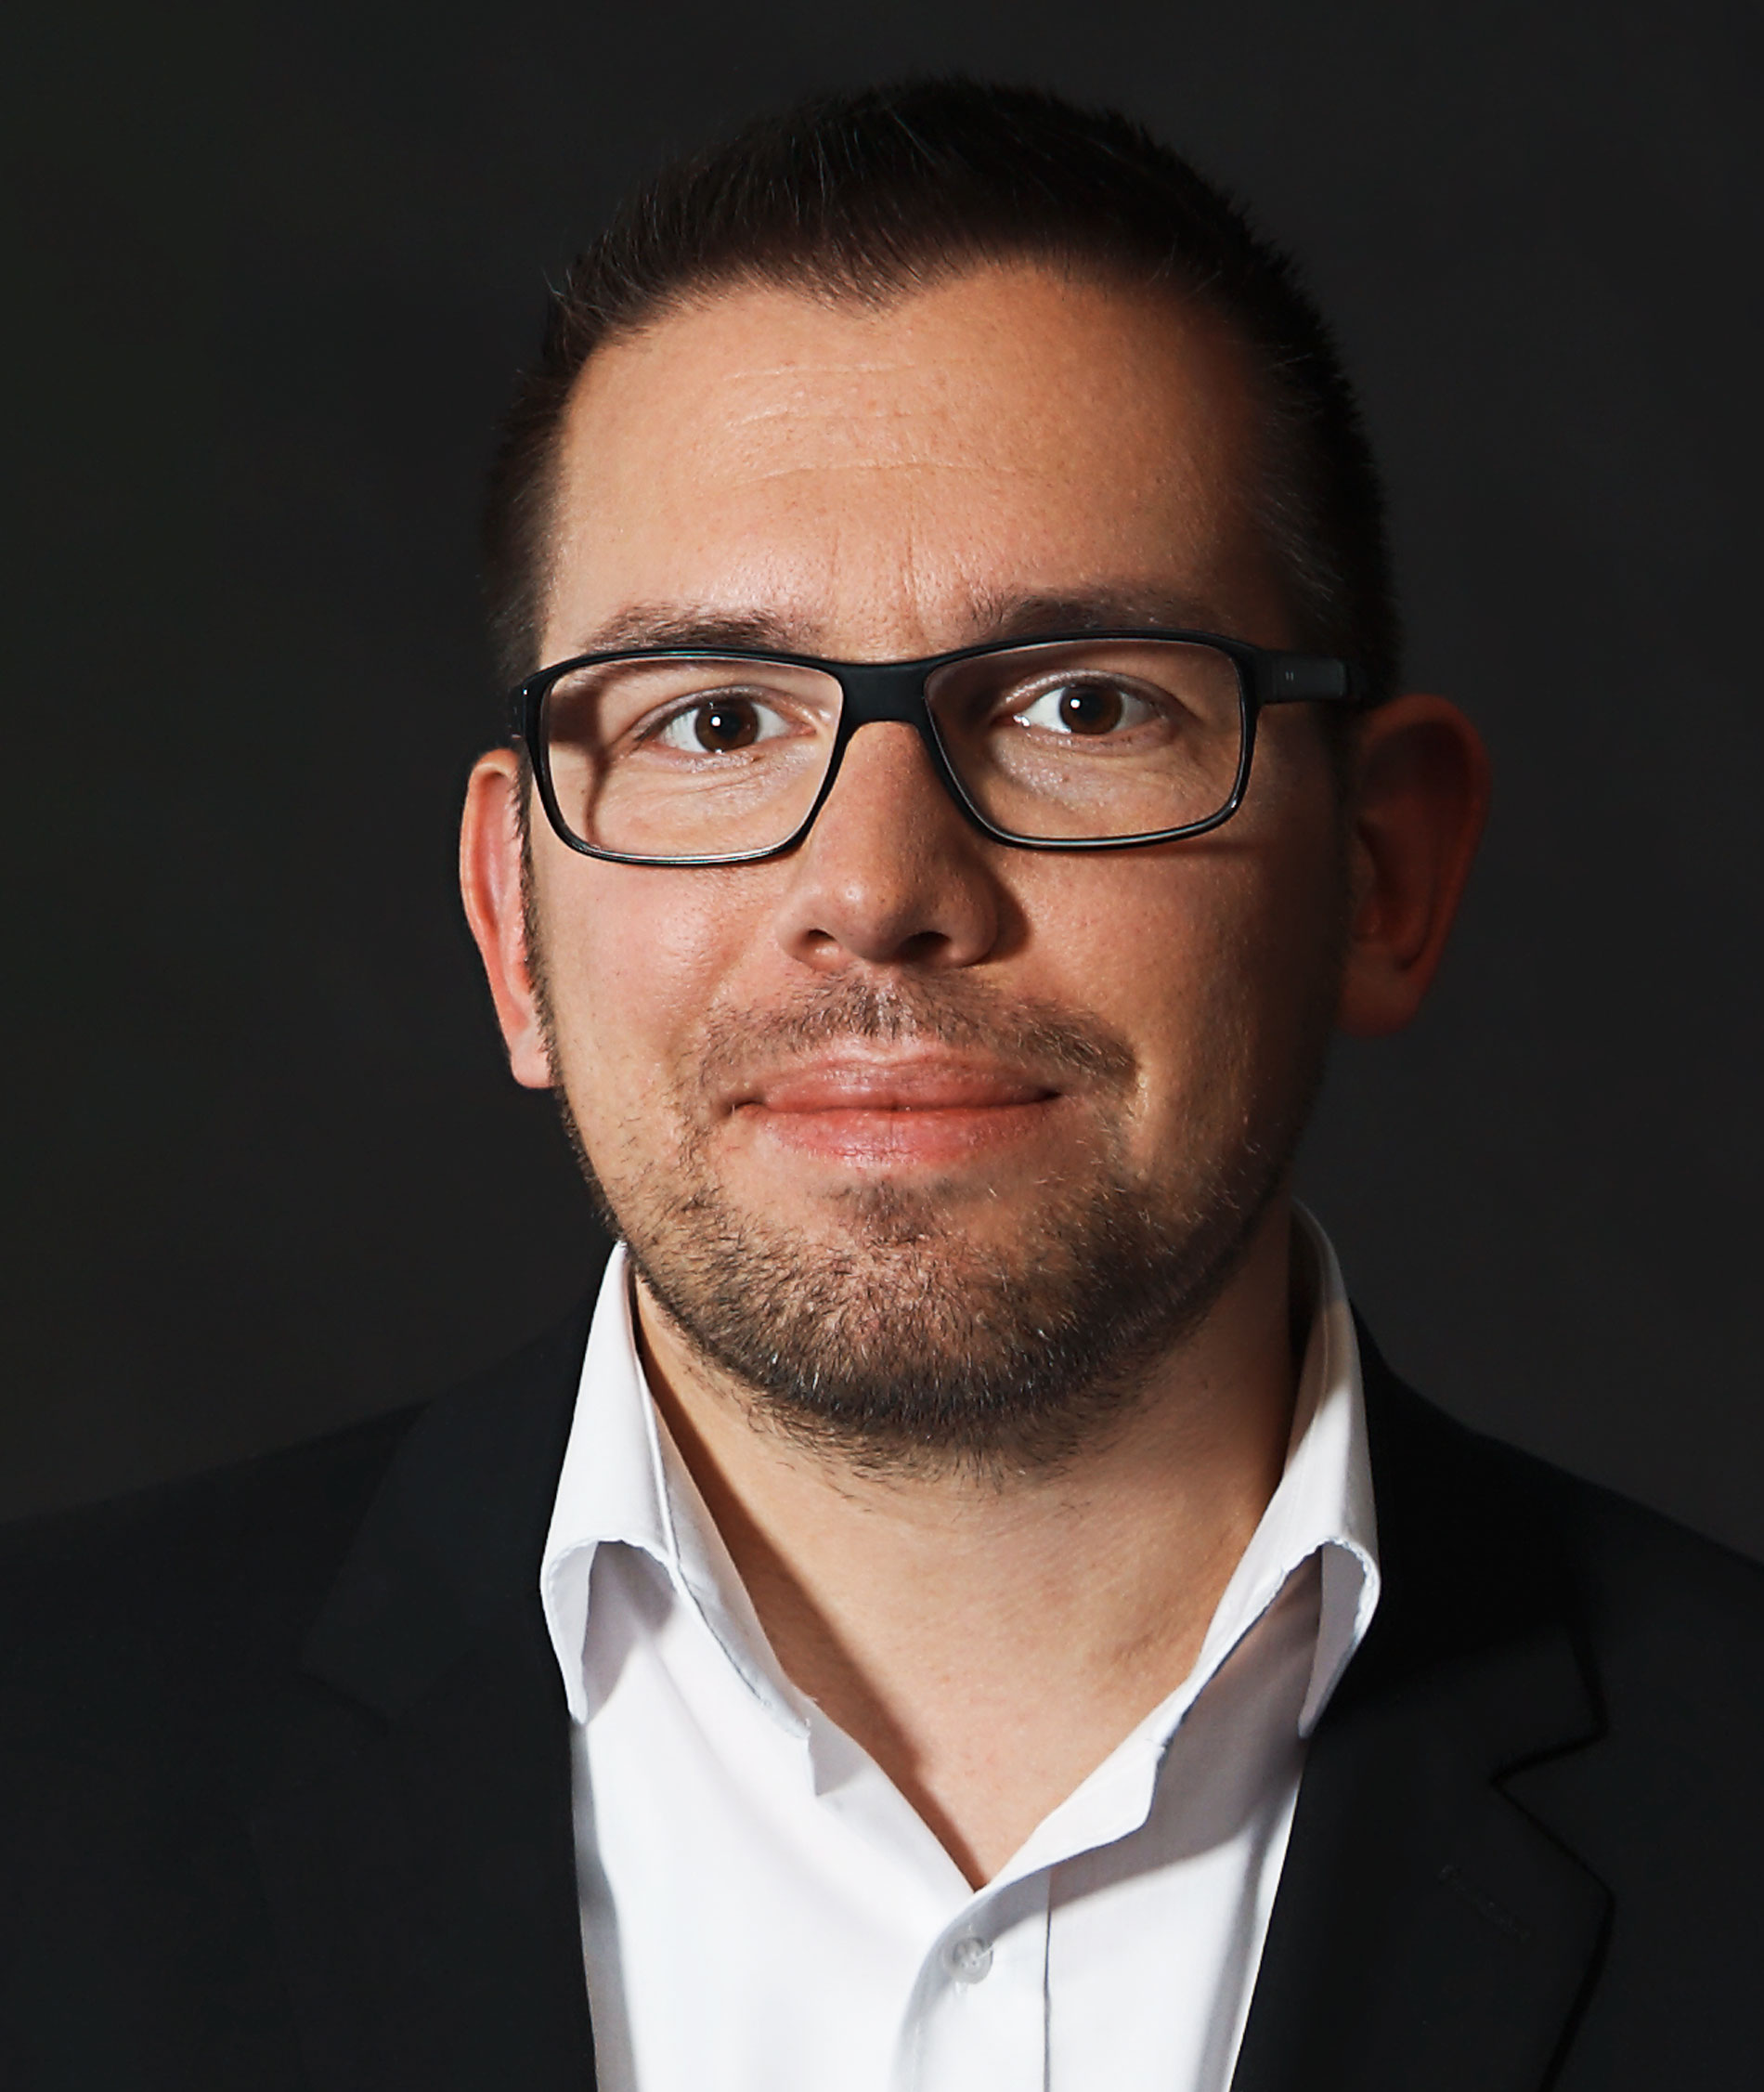 Thomas Kahmann, Head of PR Samsung bei Electronics